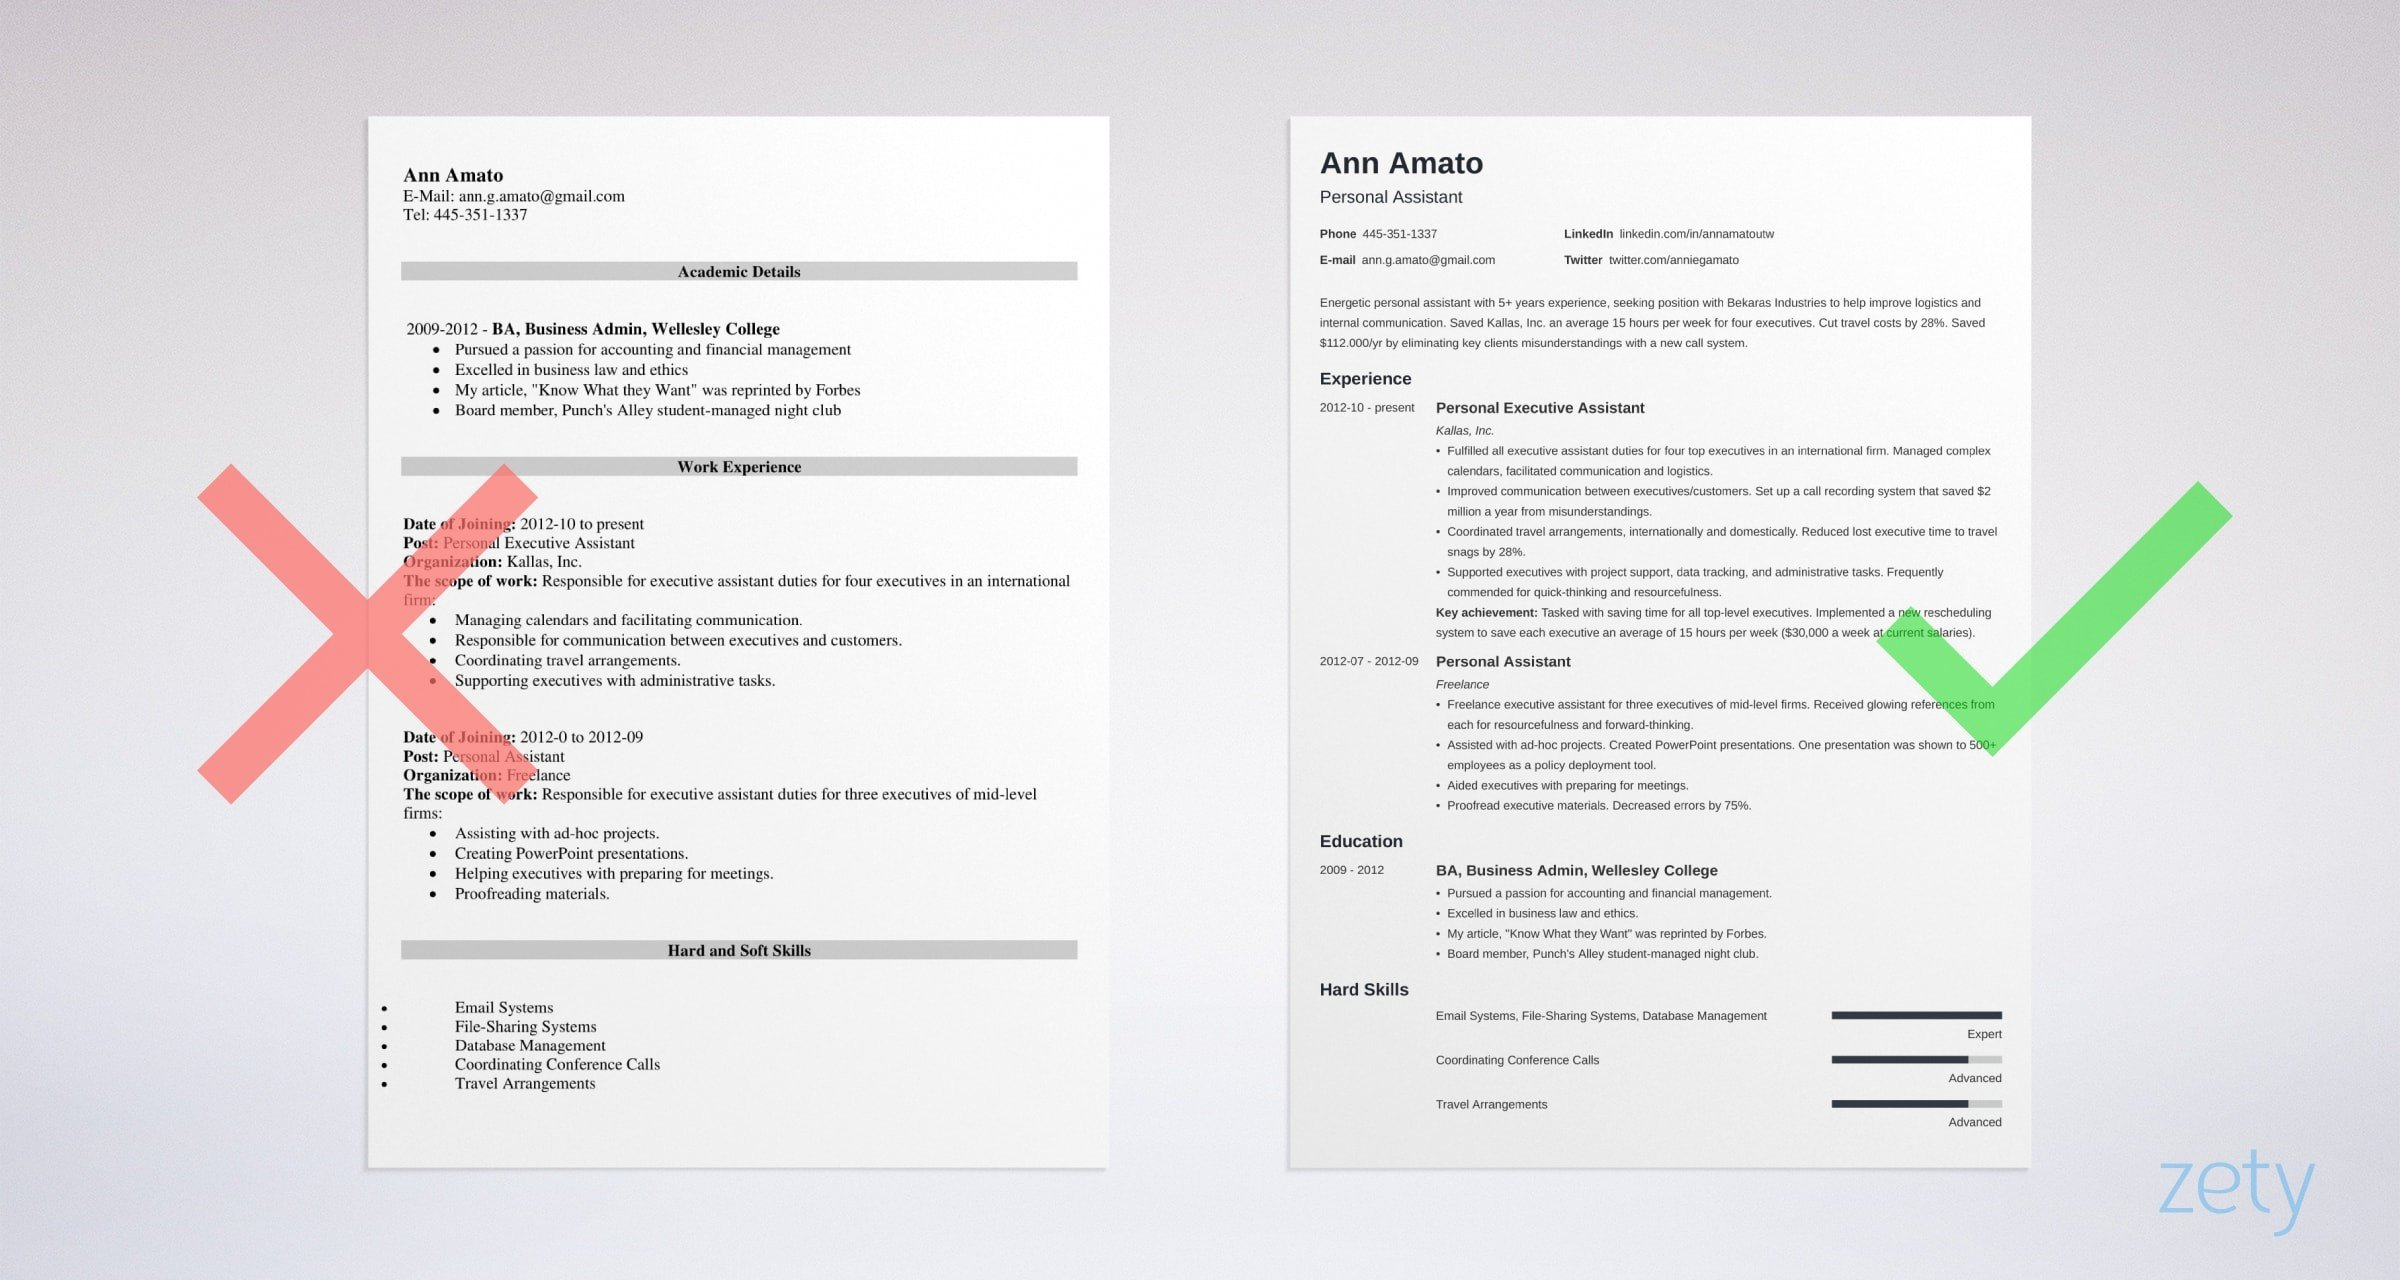 Resume Format: 10+ Samples & Templates for all Types of Resumes